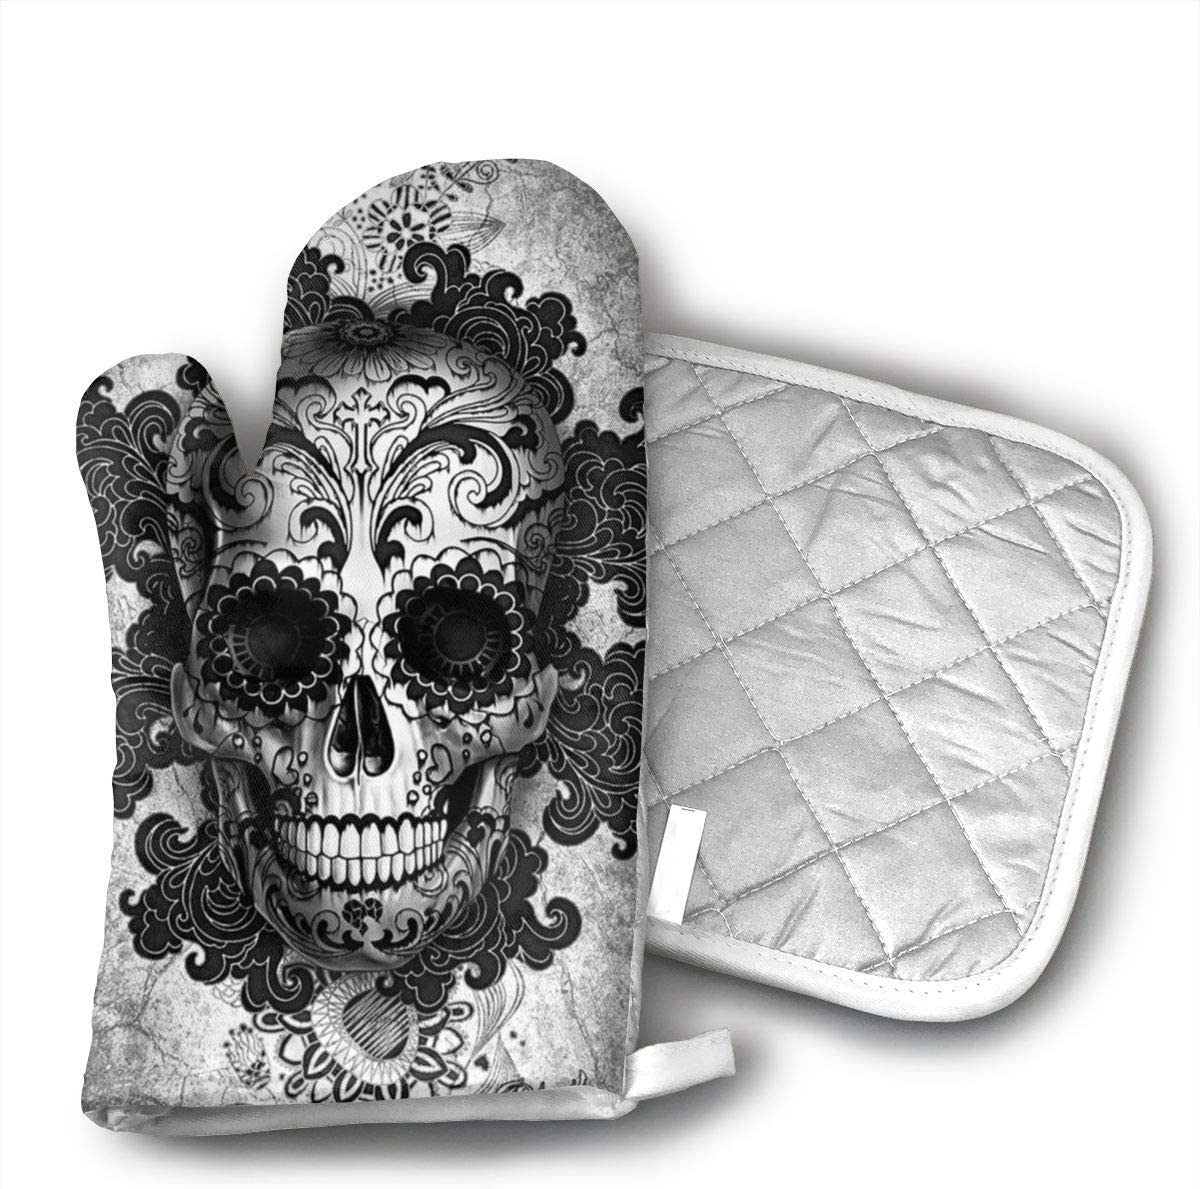 TMVFPYR Sugar Skull Black Oven Mitts, Non-Slip Silicone Oven Mitts, Extra Long Kitchen Mitts, Heat Resistant to 500Fahrenheit Degrees Kitchen Oven Gloves